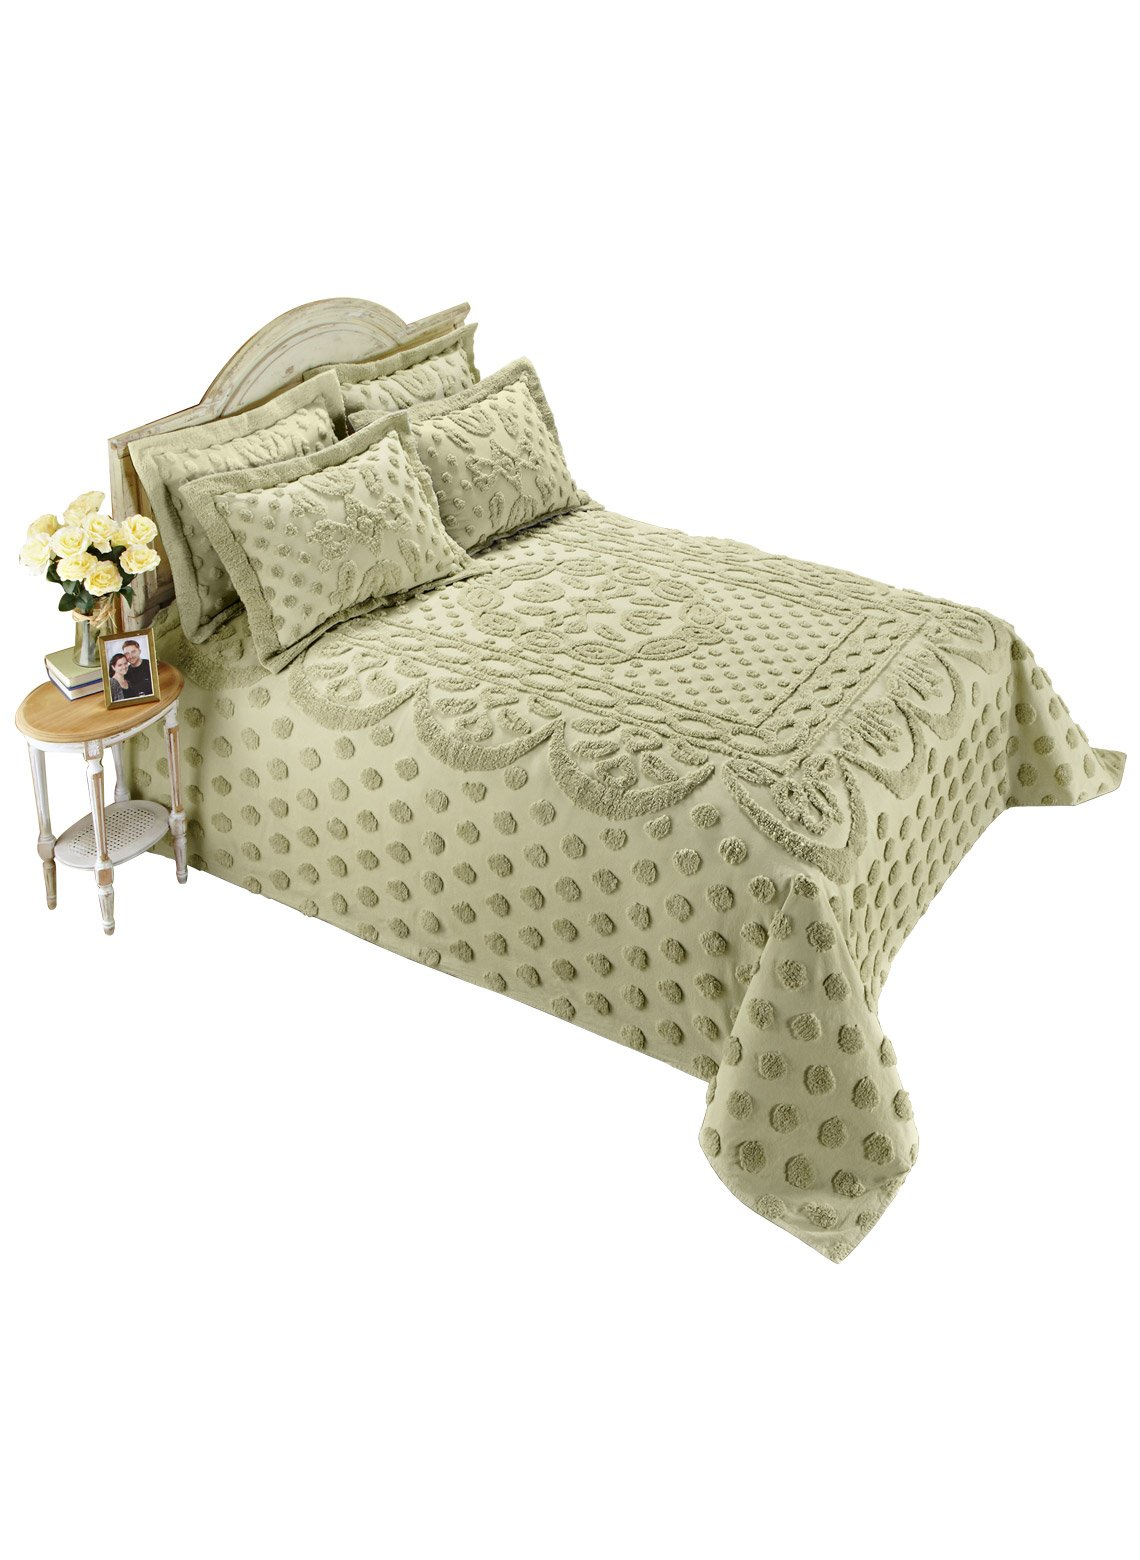 Carol Wright Gifts Chenille Bedspread - King, Color Sage, Size King, Sage, Size King